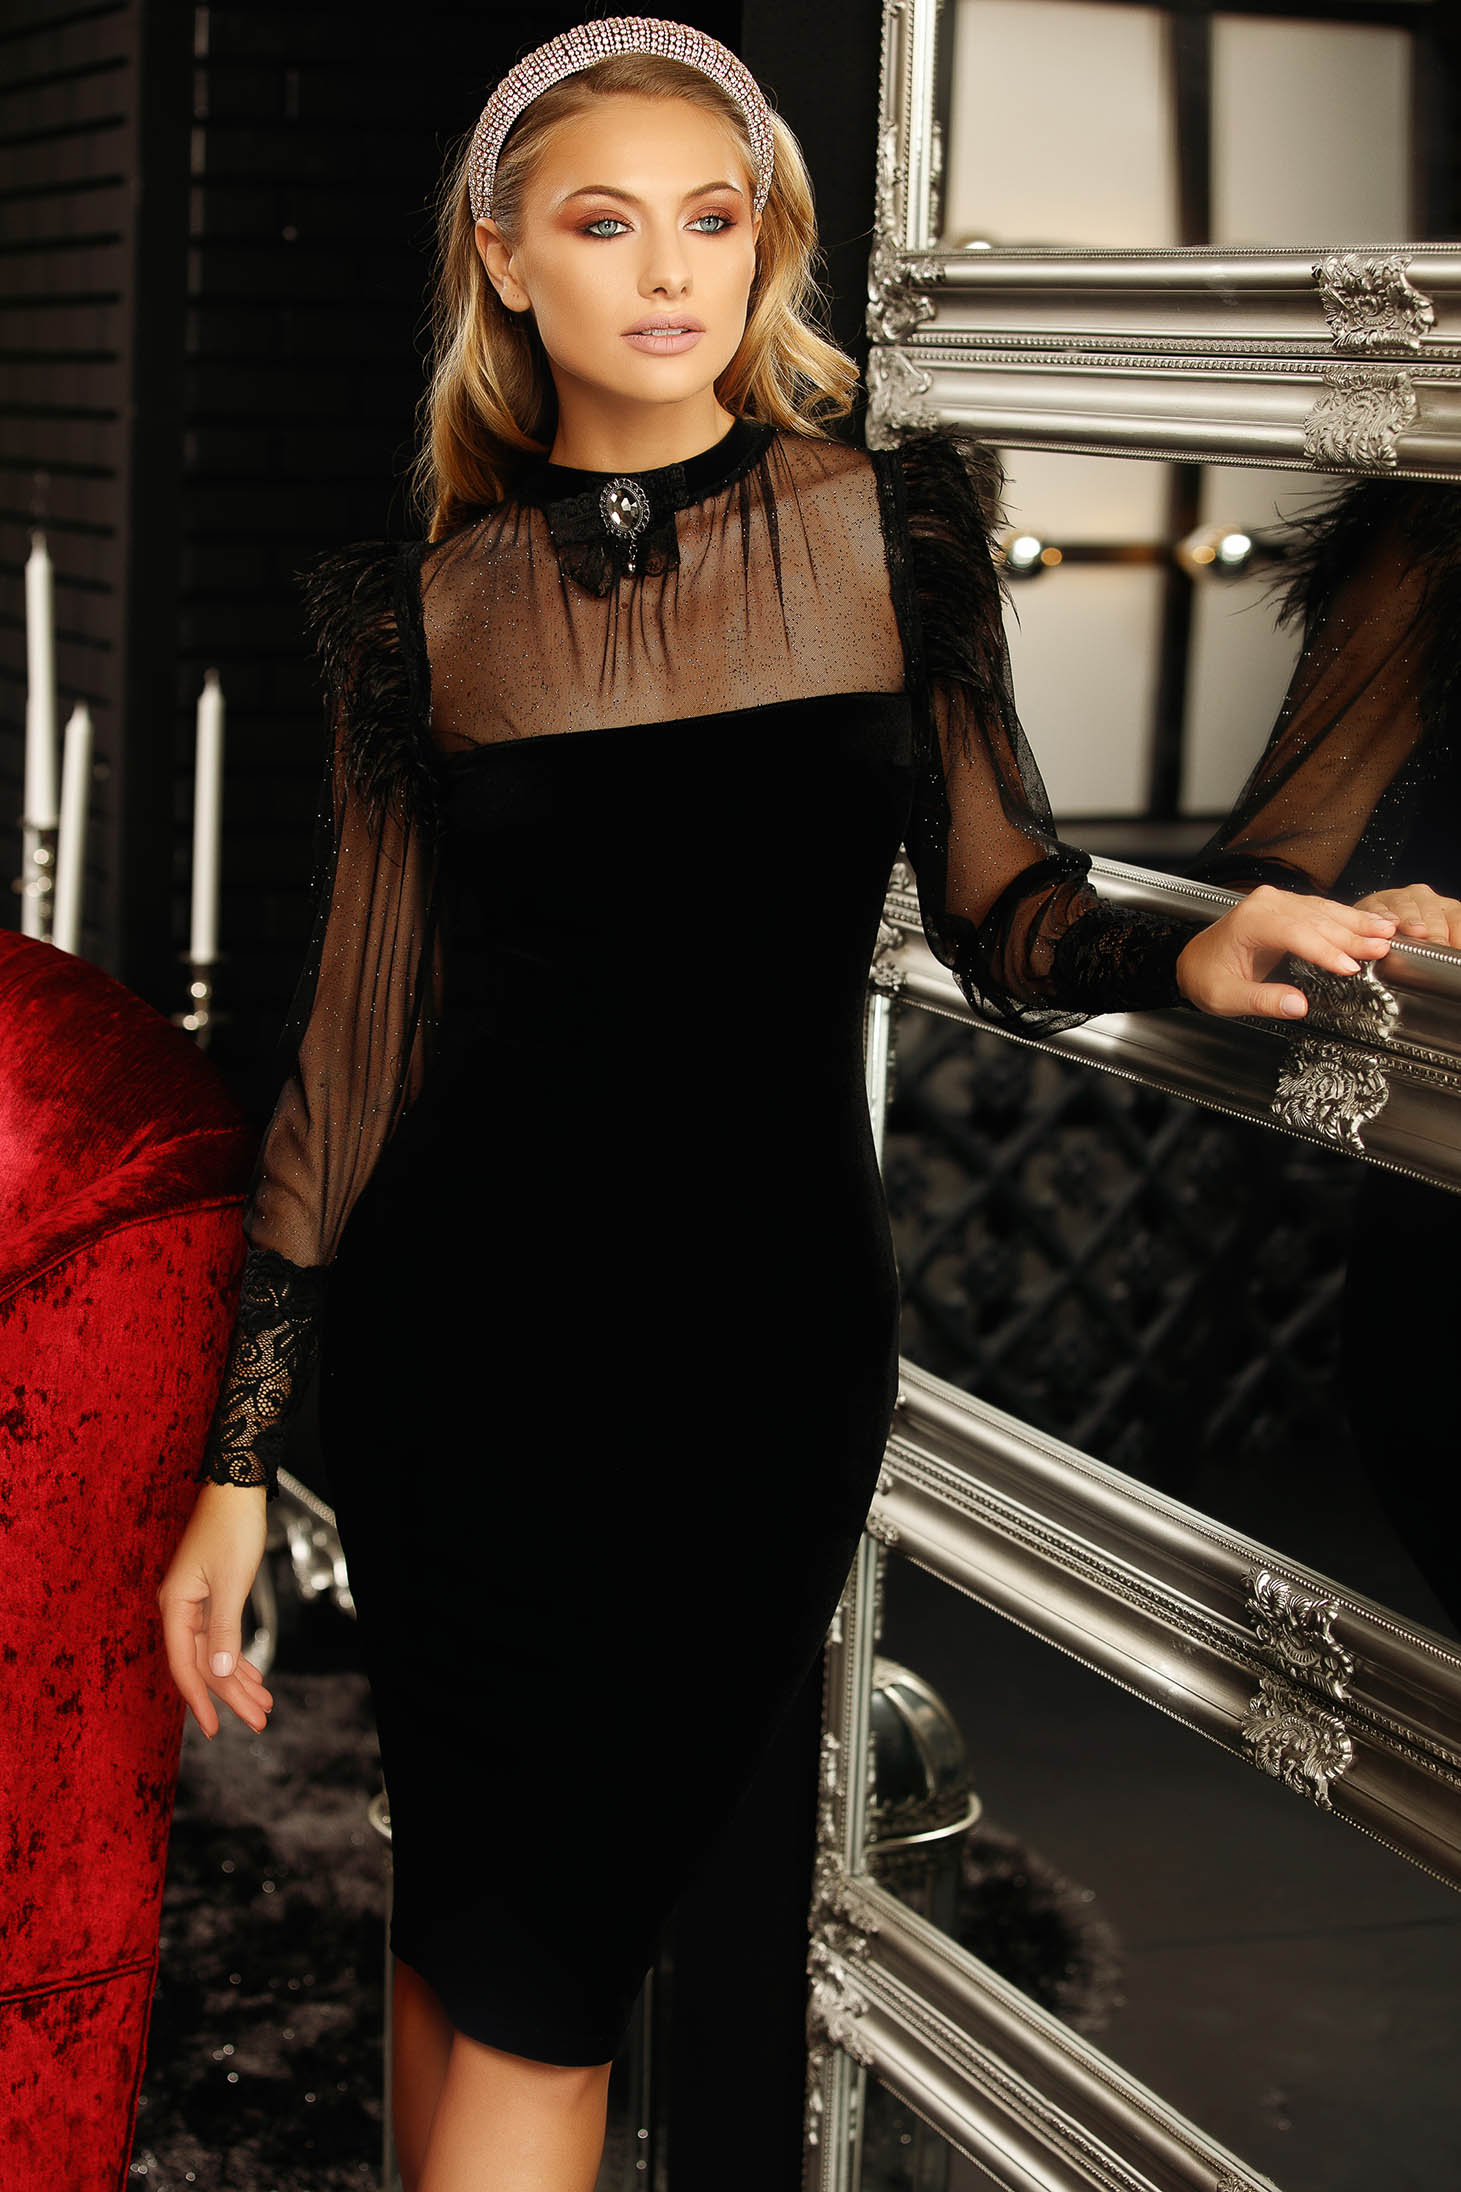 Dress black occasional pencil midi velvet with turtle neck accessorized with breastpin long sleeved with net accessory feather details with bright details